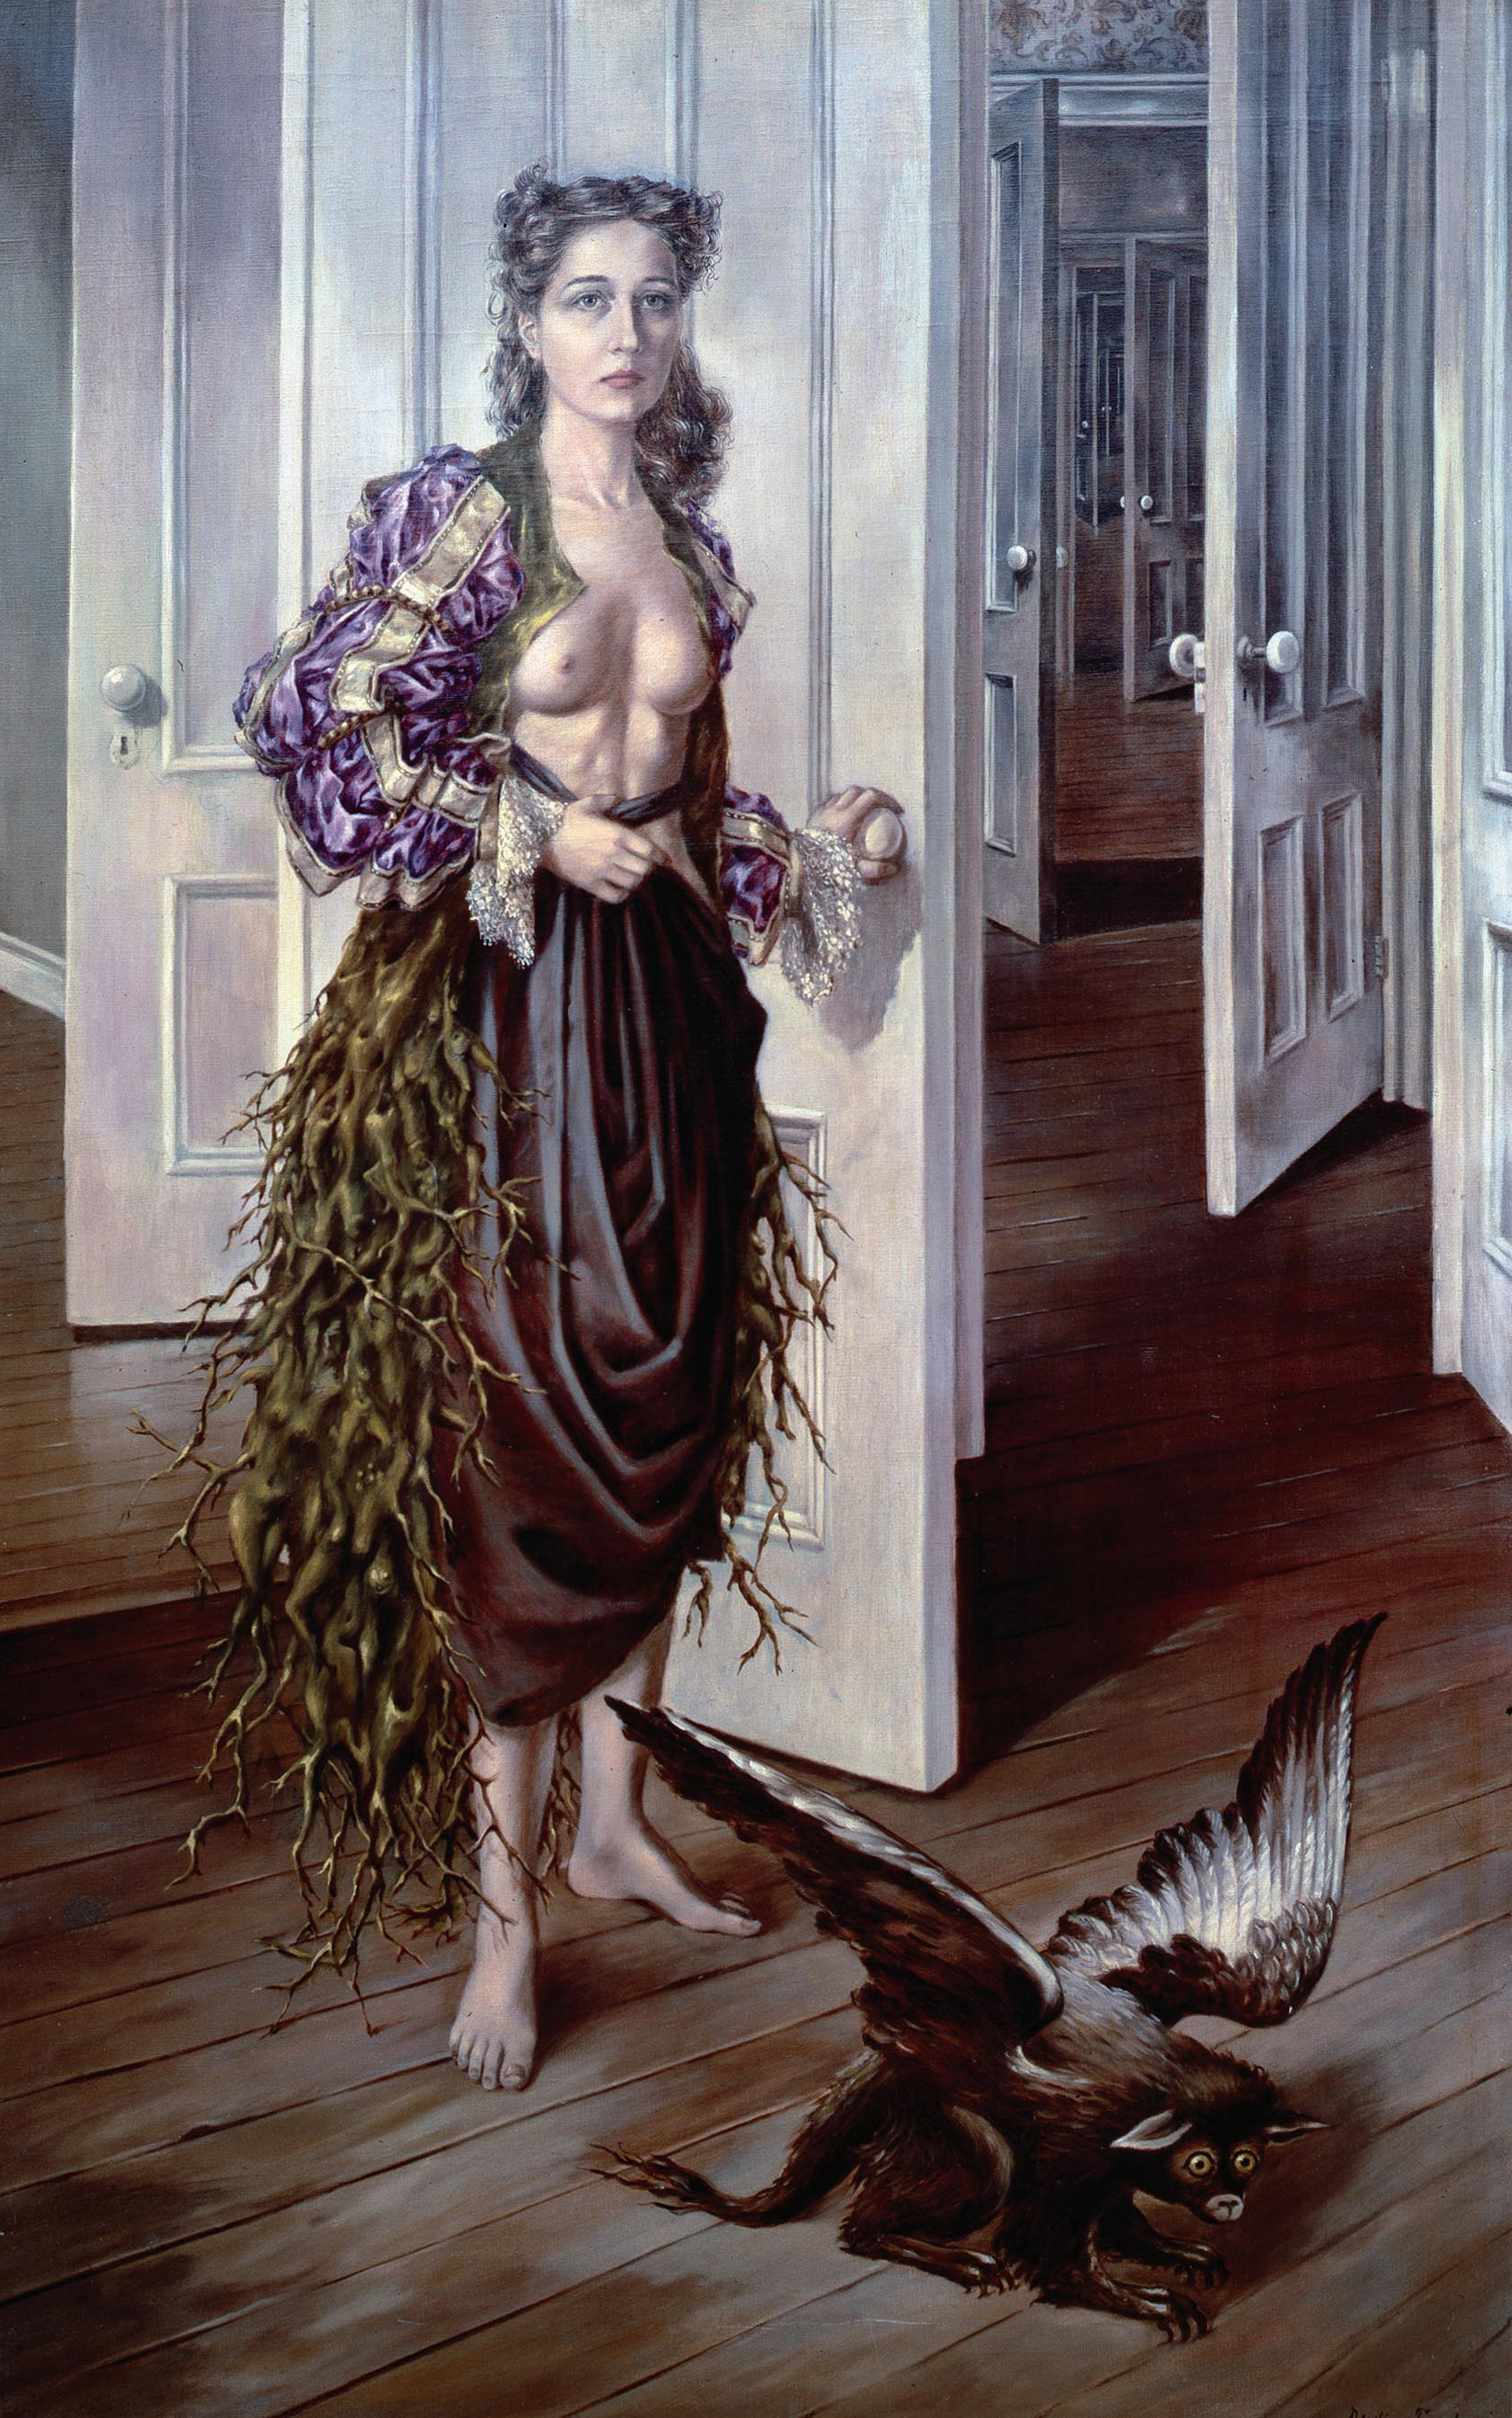 Dorothea Tanning's Powerful Surrealist Art Defied Convention - Artsy